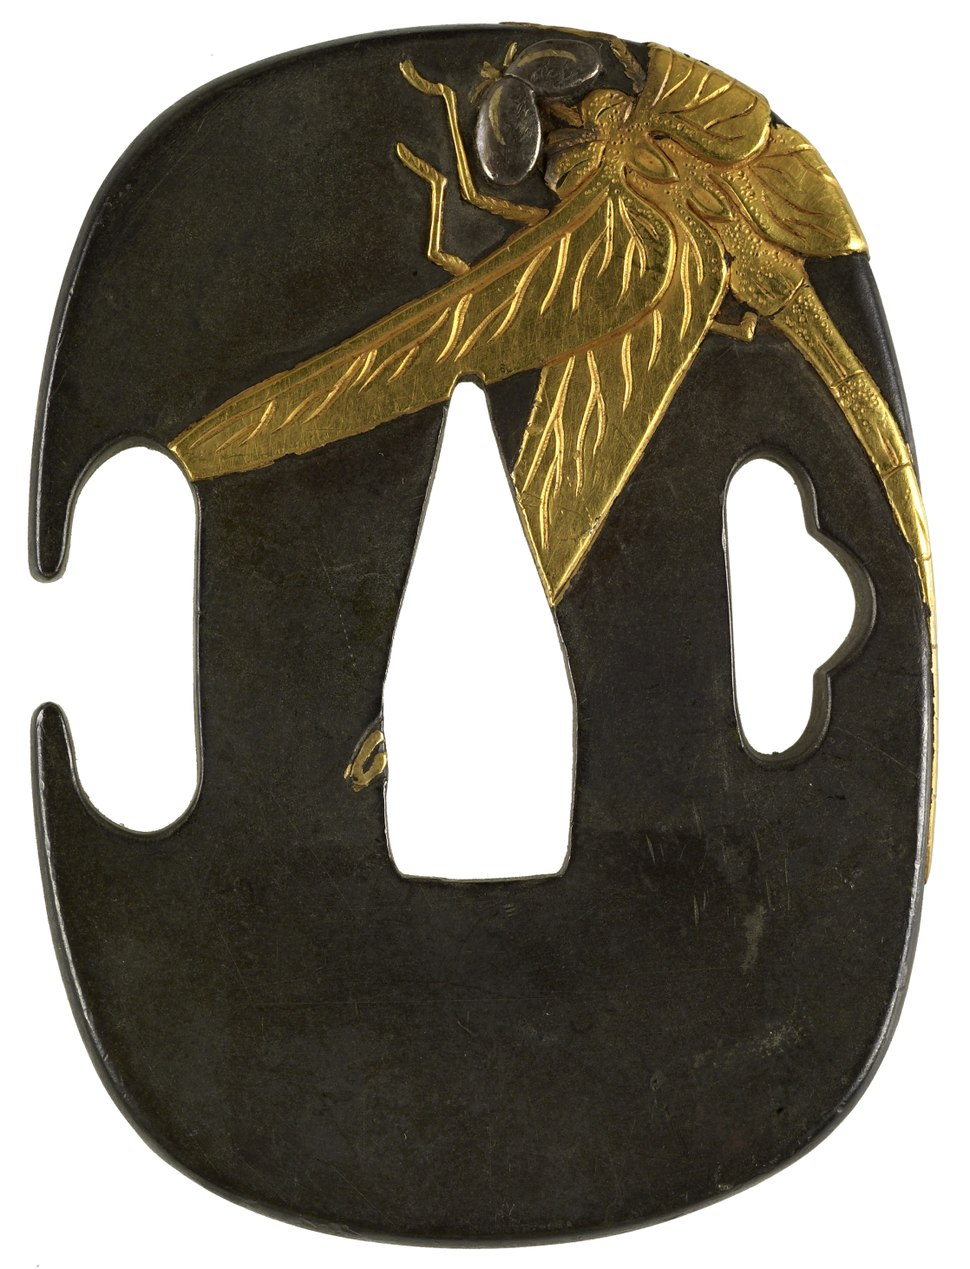 Japanese - Tsuba with a Dragonfly - Walters 51254 (clean)